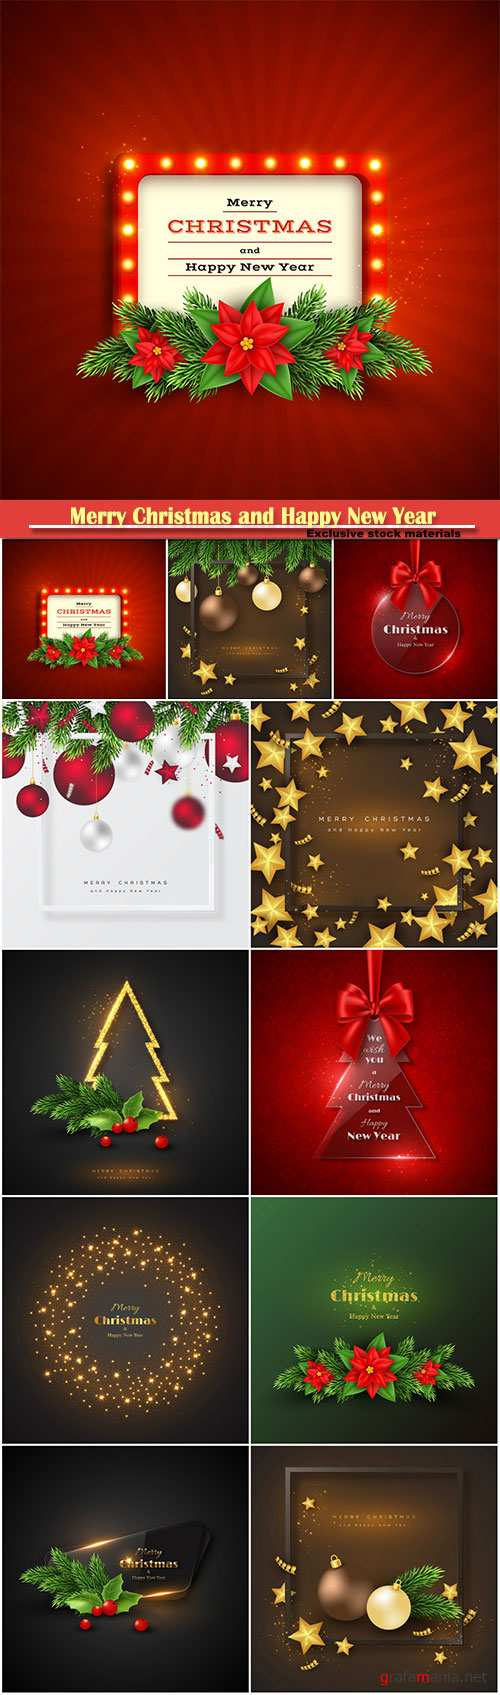 Merry Christmas and Happy New Year holiday background